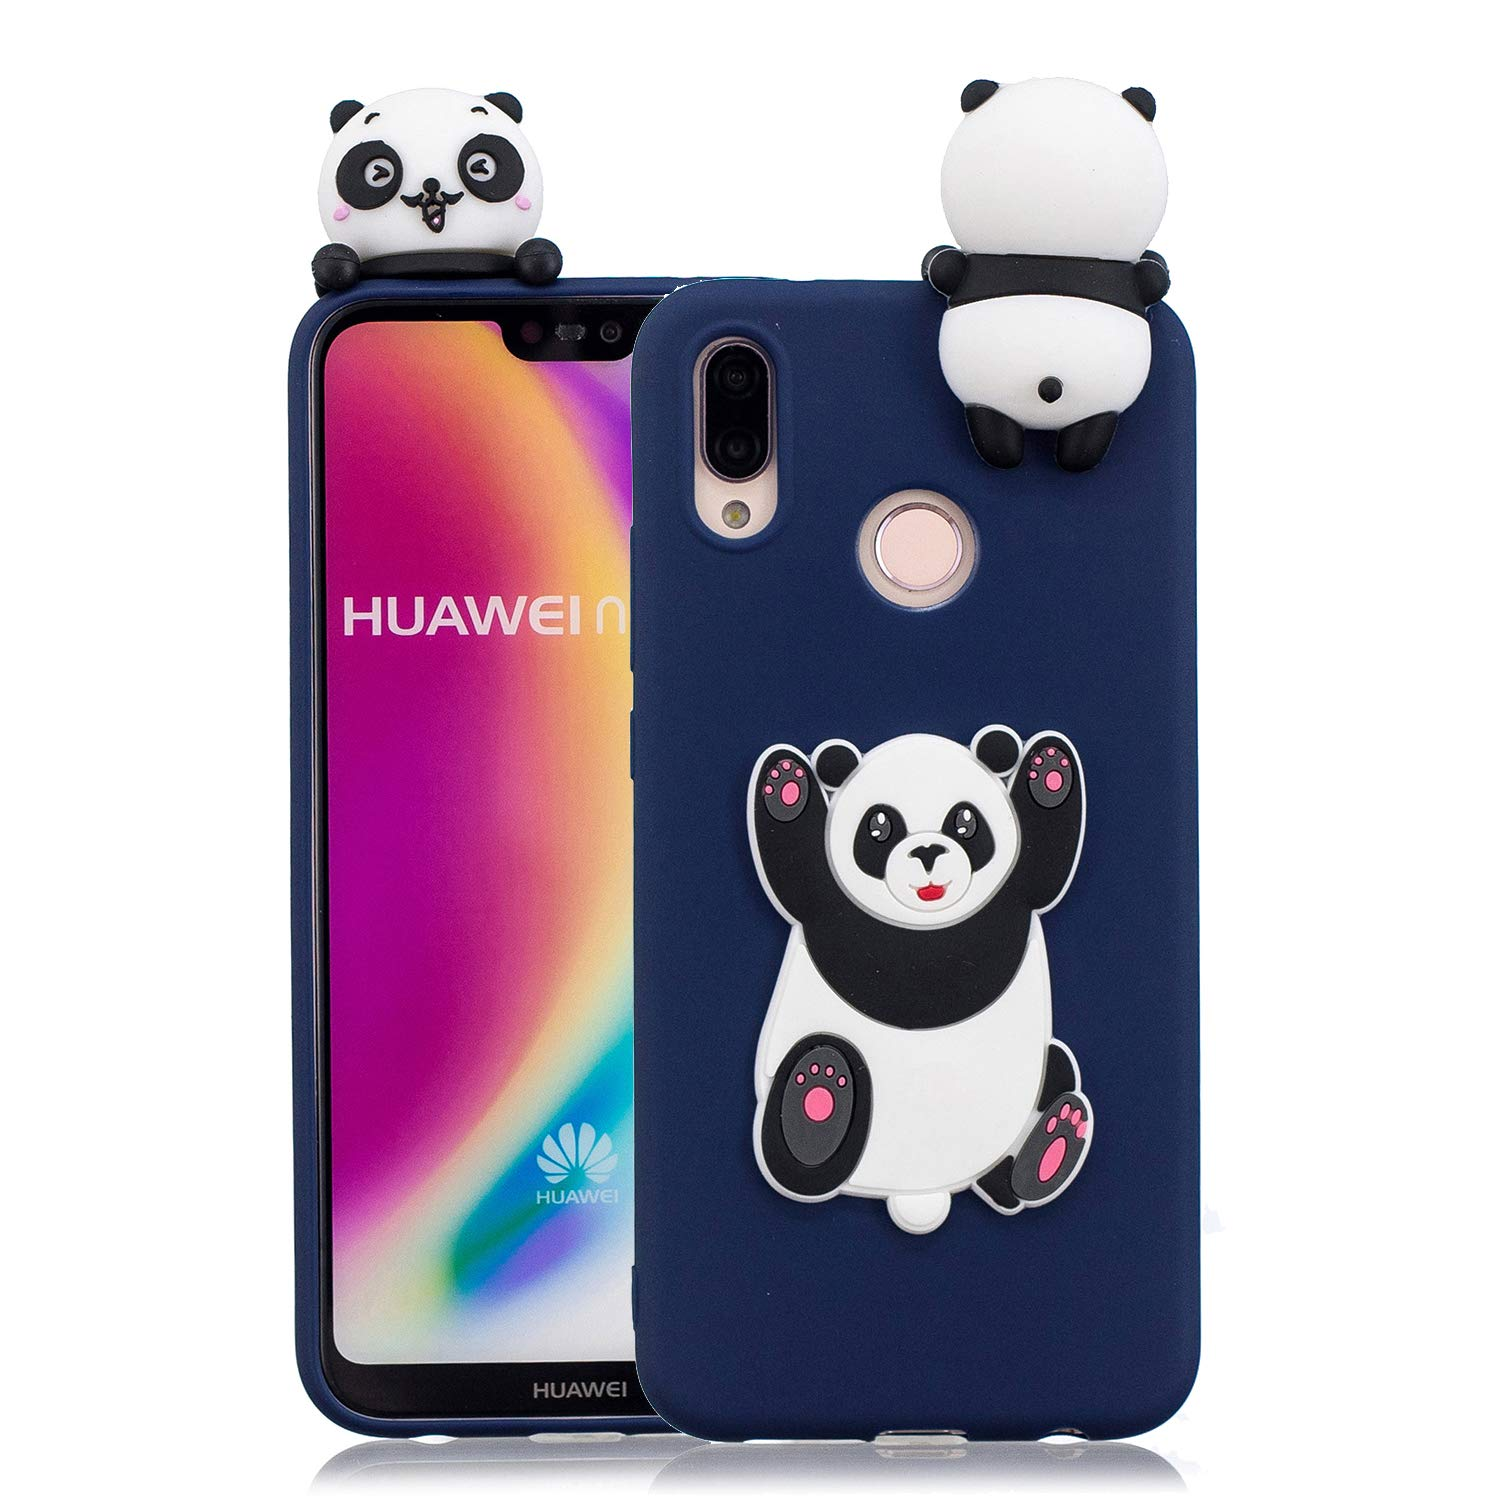 3D Cartoon Animal Case for Xiaomi Redmi Note 5 Pro, Yobby Xiaomi Redmi Note 5 Pro Cute Kawaii Pattern Case Slim Soft Flexible Rubber Silicone Shockproof Protective Back Cover-Panda Red Bow